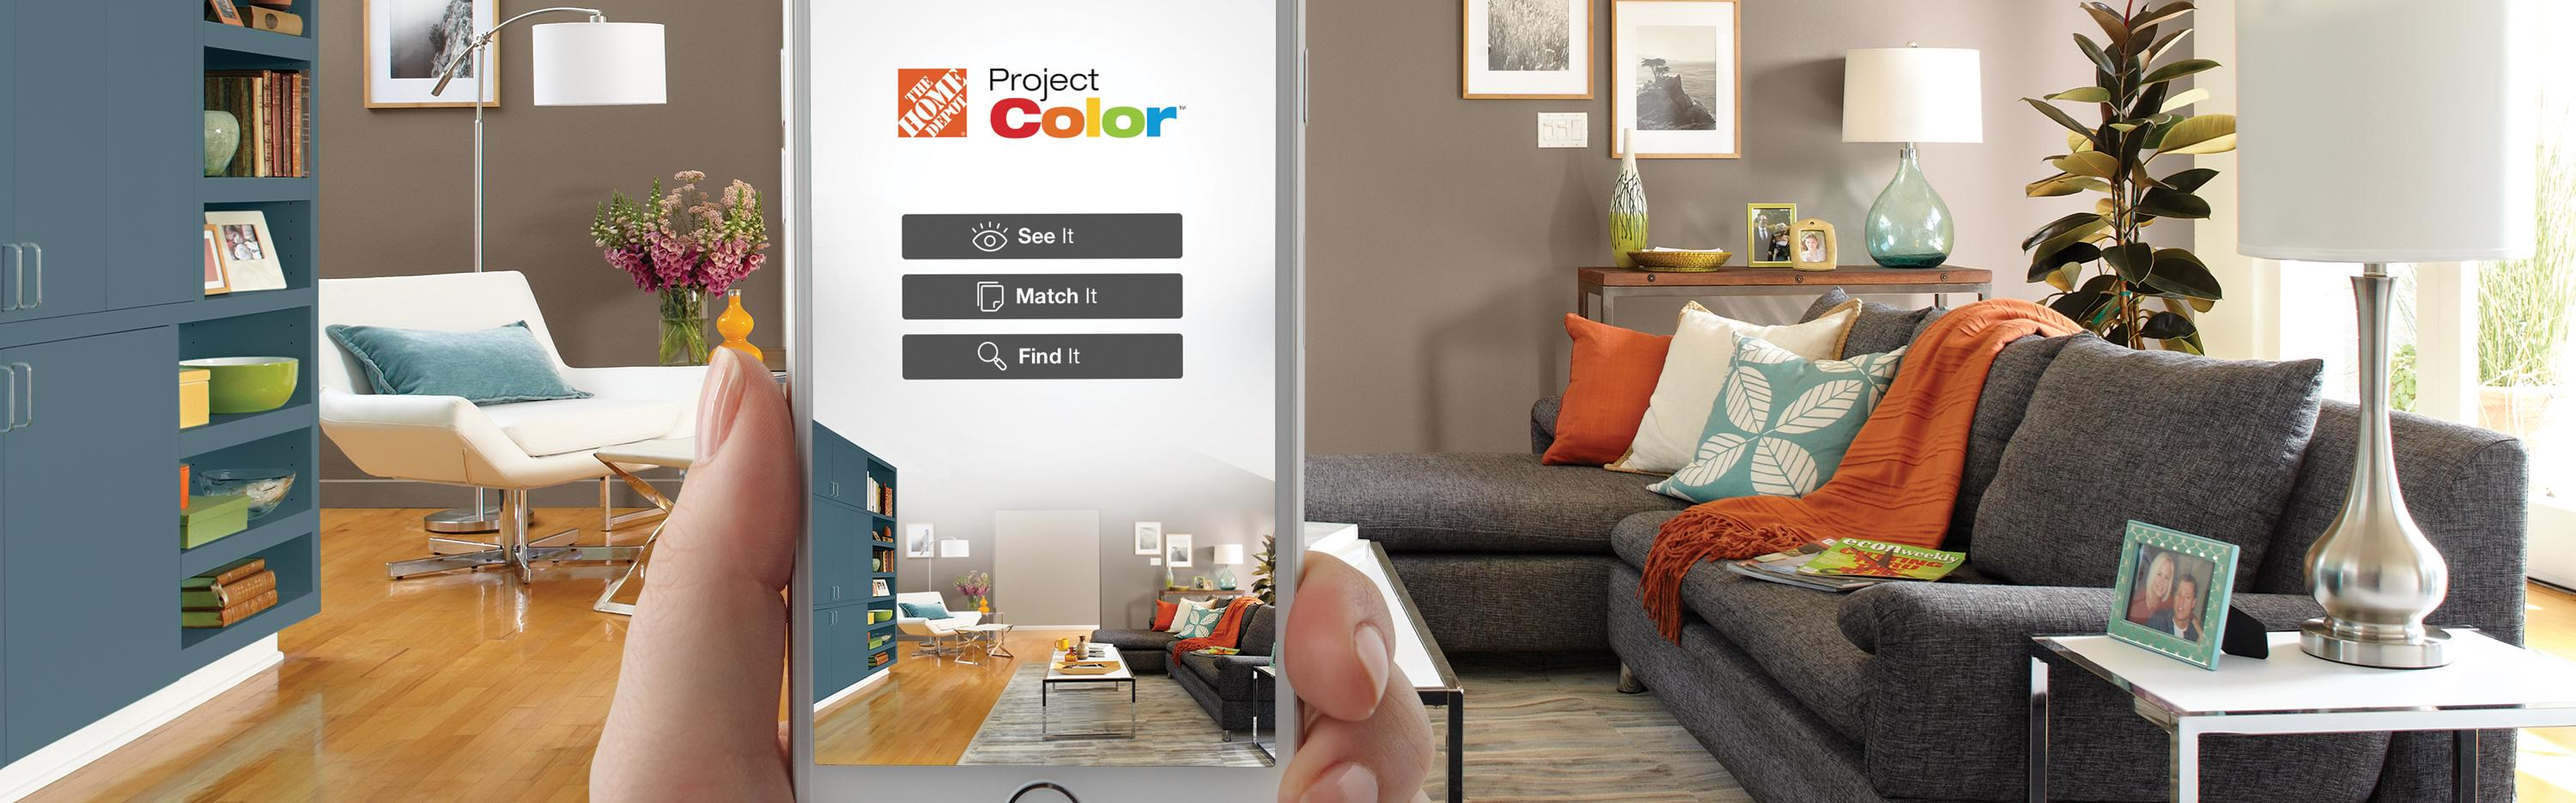 Take A Picture Of A Room And Design It App The Home Depot New Technology Shows You The Perfect